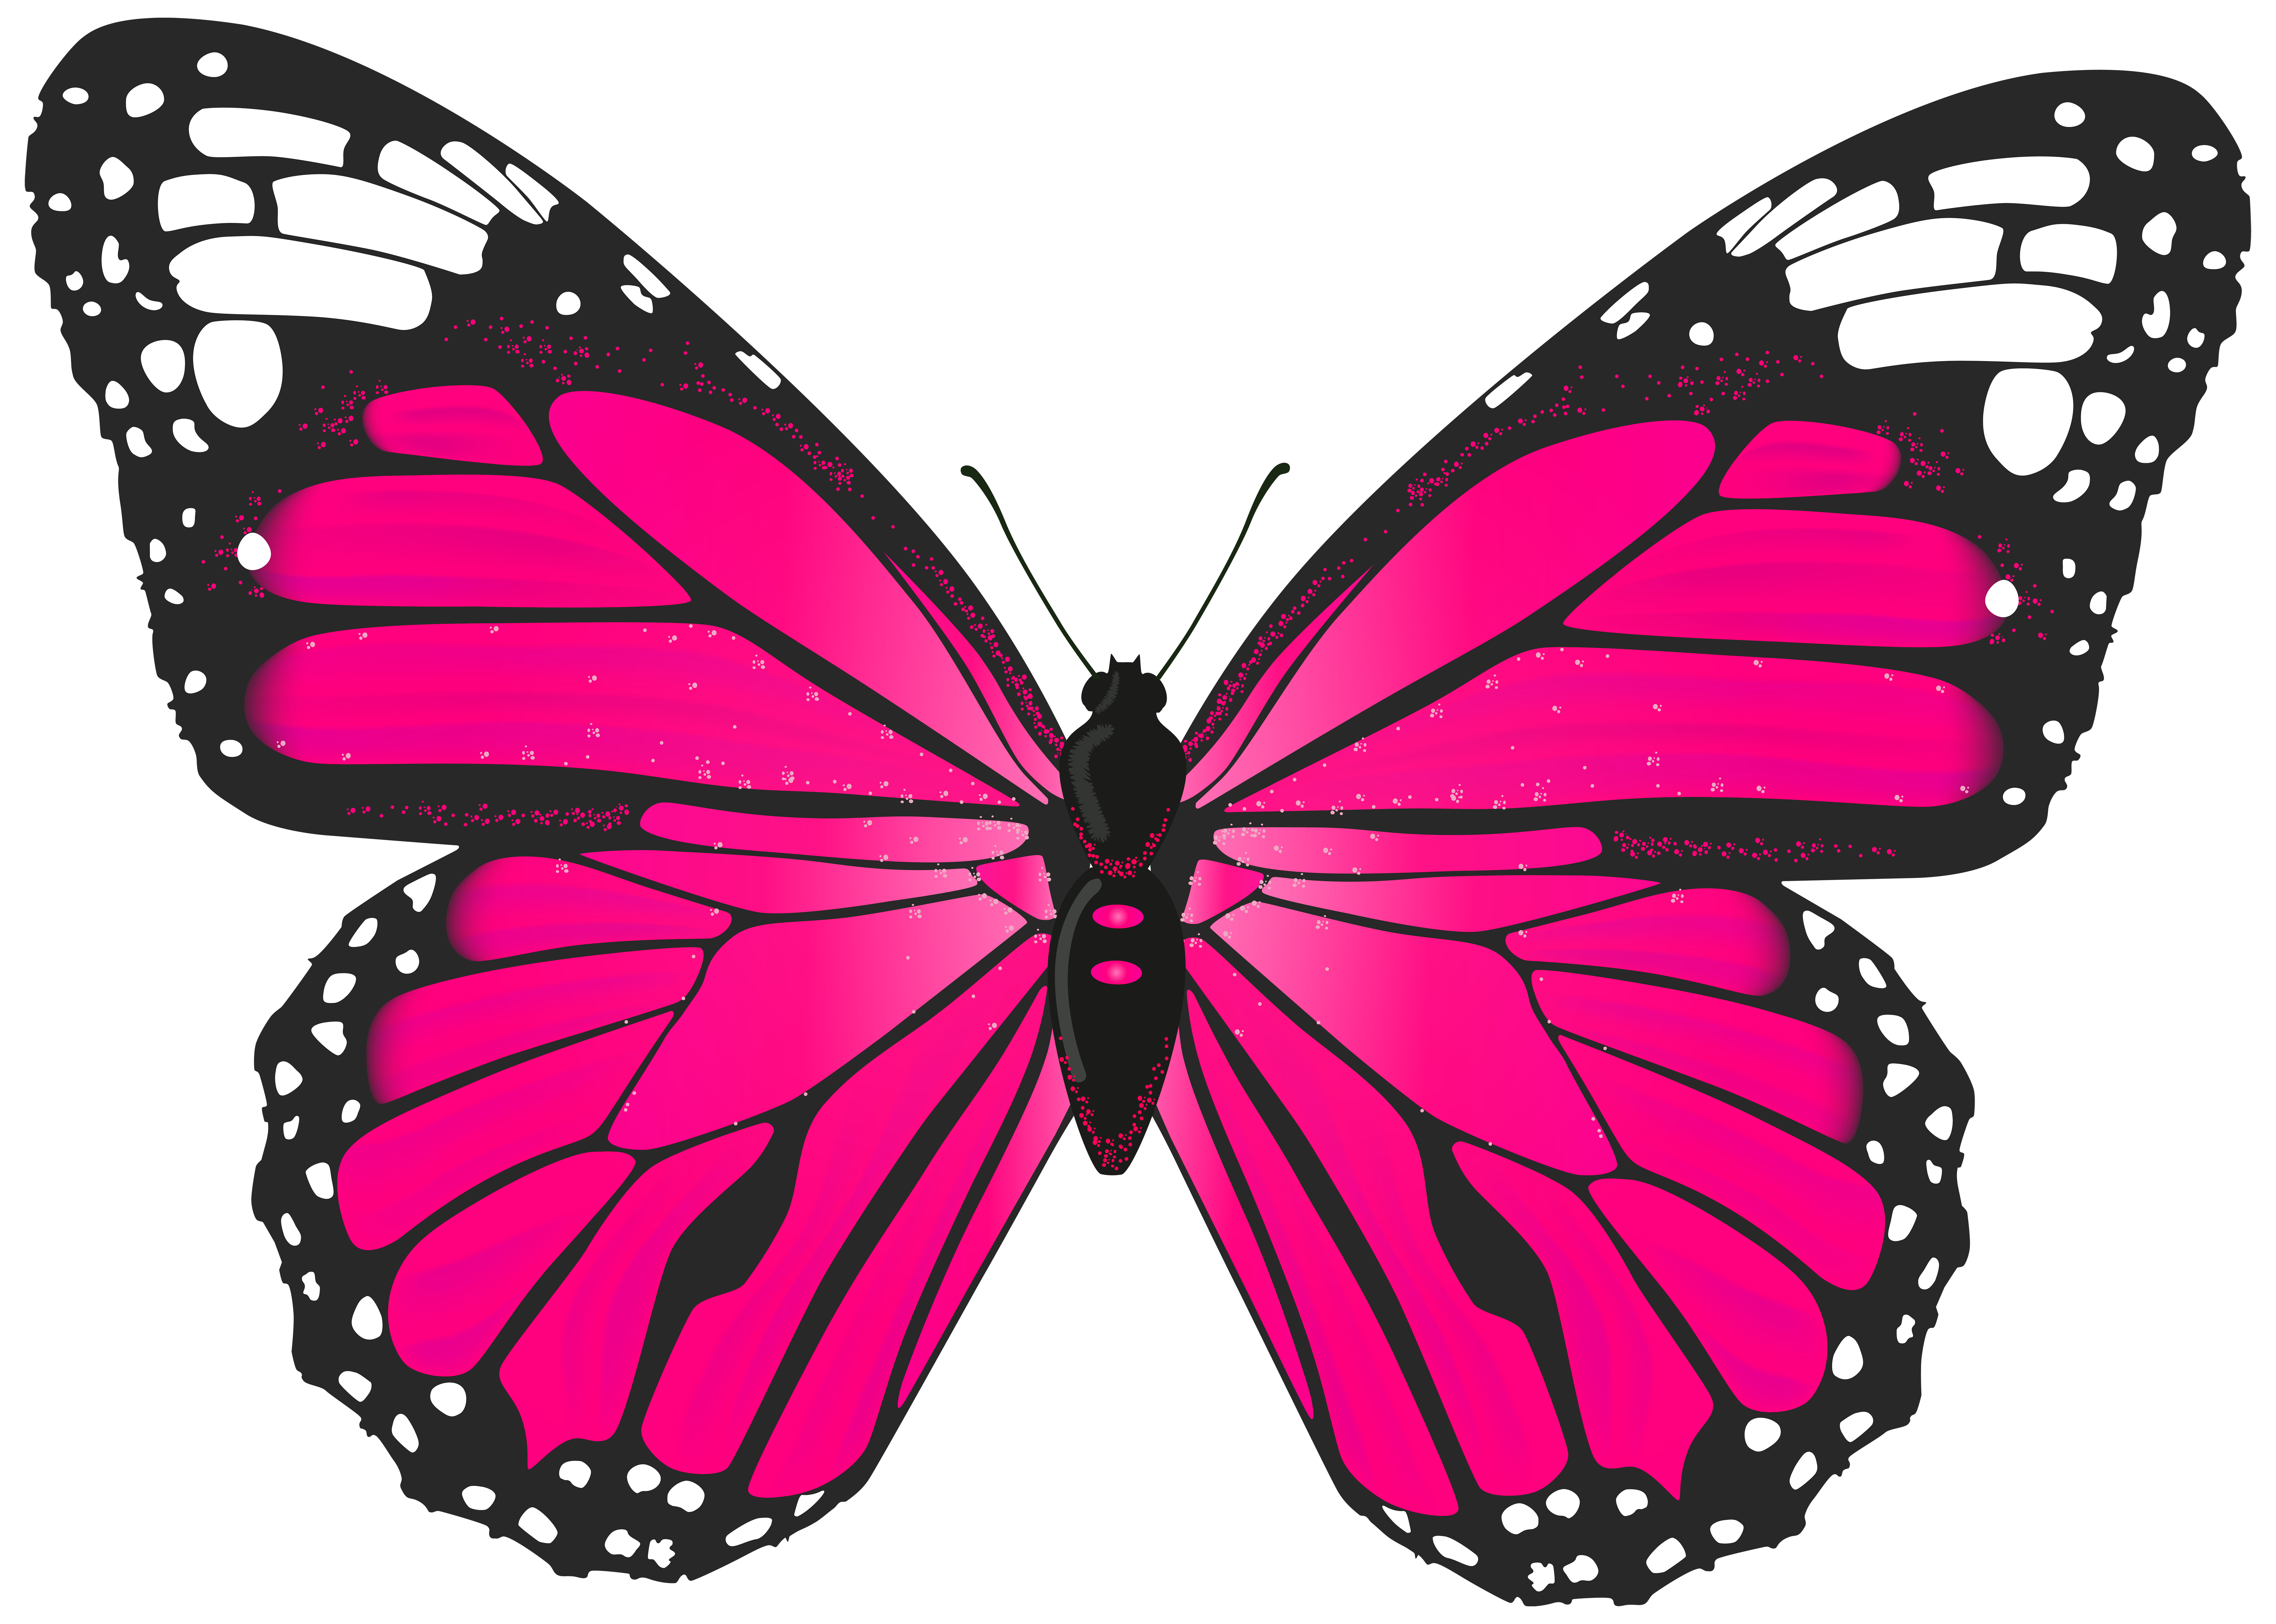 Pink Butterfly Png Transparent Clip Art Image Gallery Yopriceville High Quality Images And Transparent Butterfly Clip Art Butterfly Art Butterfly Painting